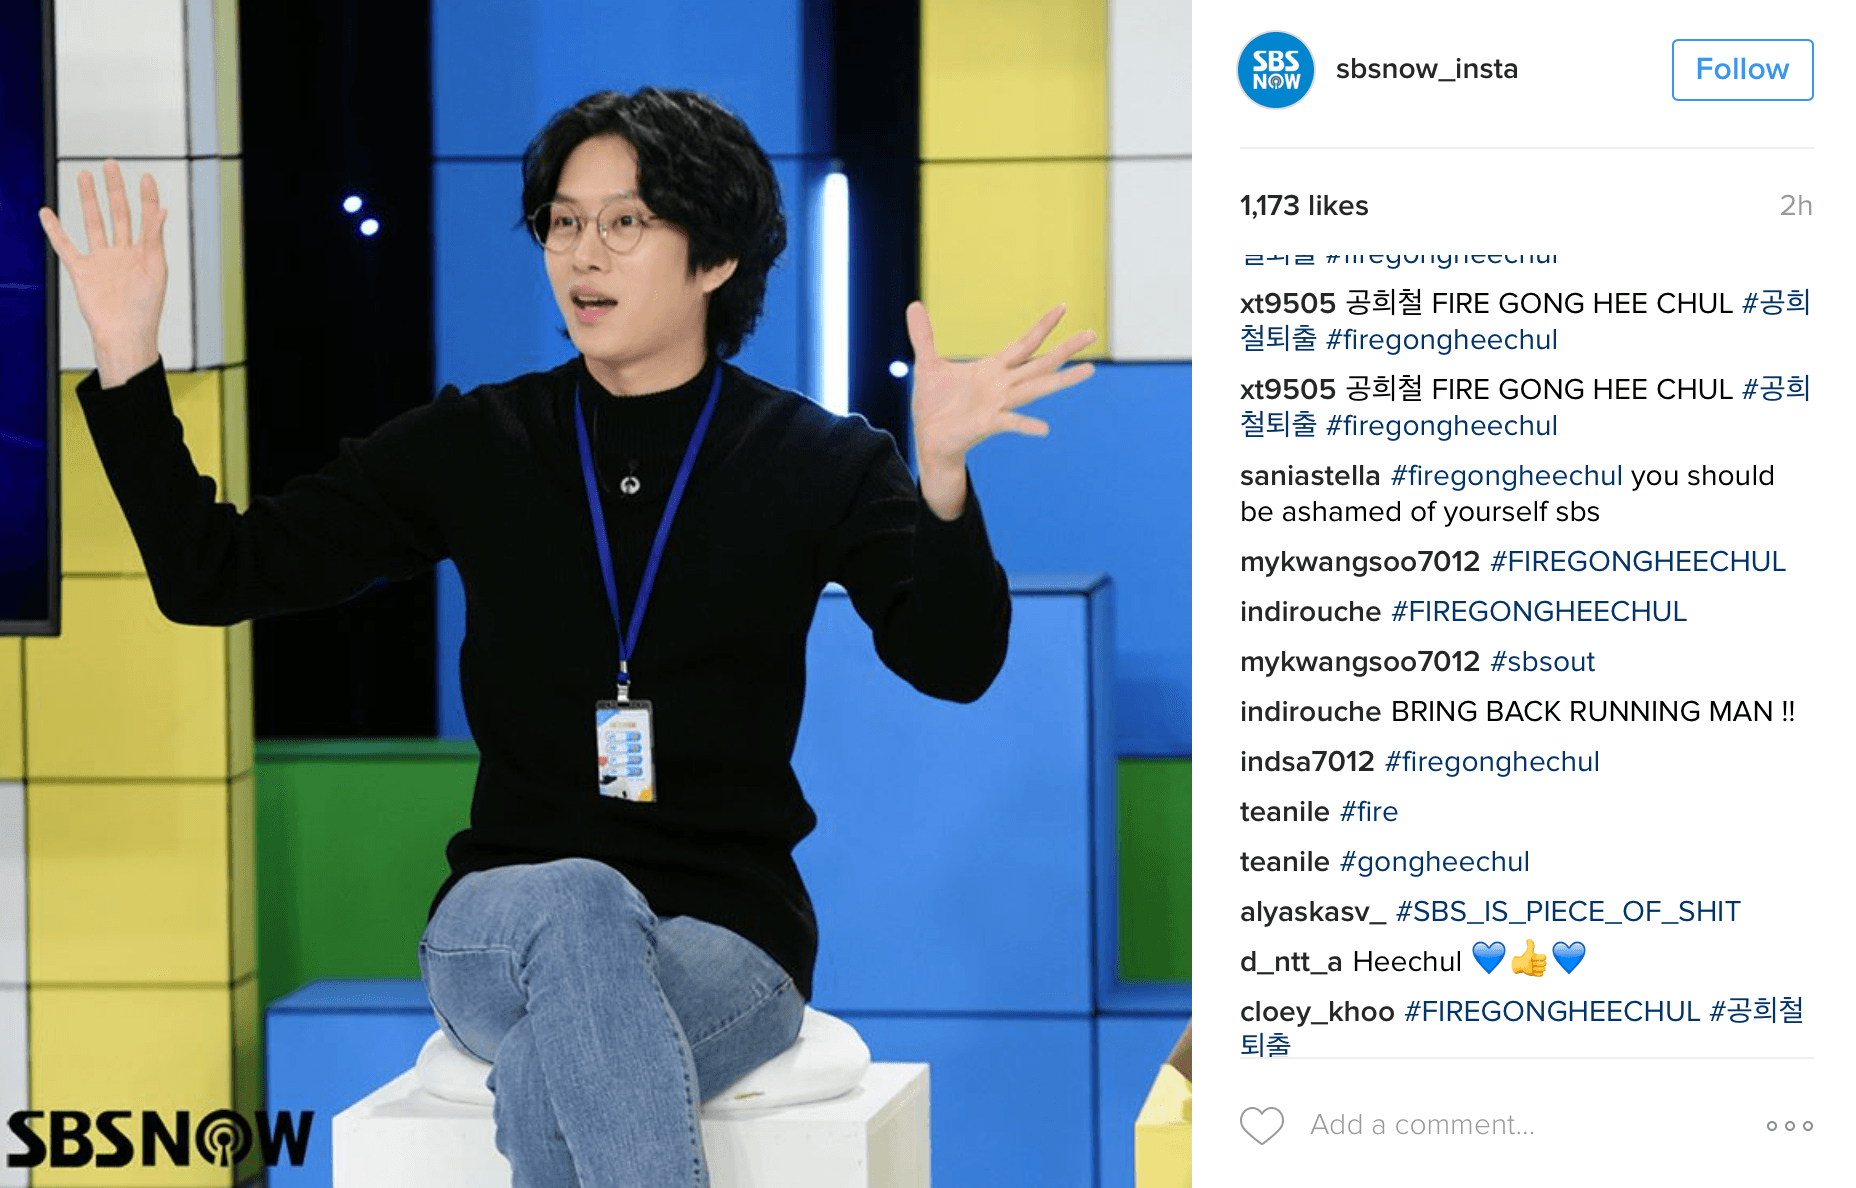 Super Junior's Heechul is not the same Heechul in this article. This photo is just one of many unrelated photos on SBS NOW's Instagram account which is also seeing comments demanding SBS fire Gong Hee Chul.